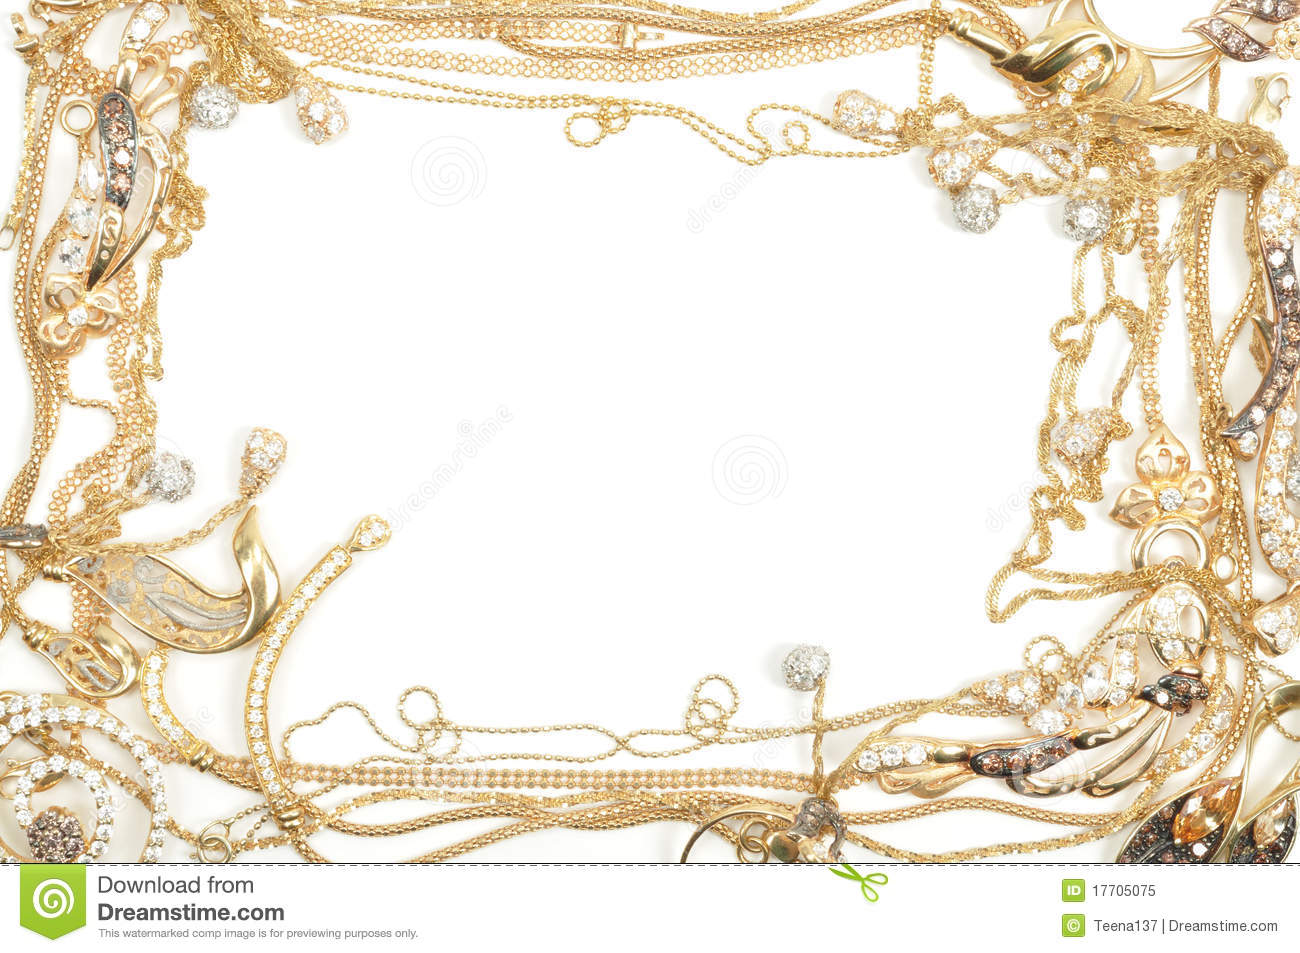 Jewelry Border Clipart Gold Frame Royalty Free Stock Photo   Image